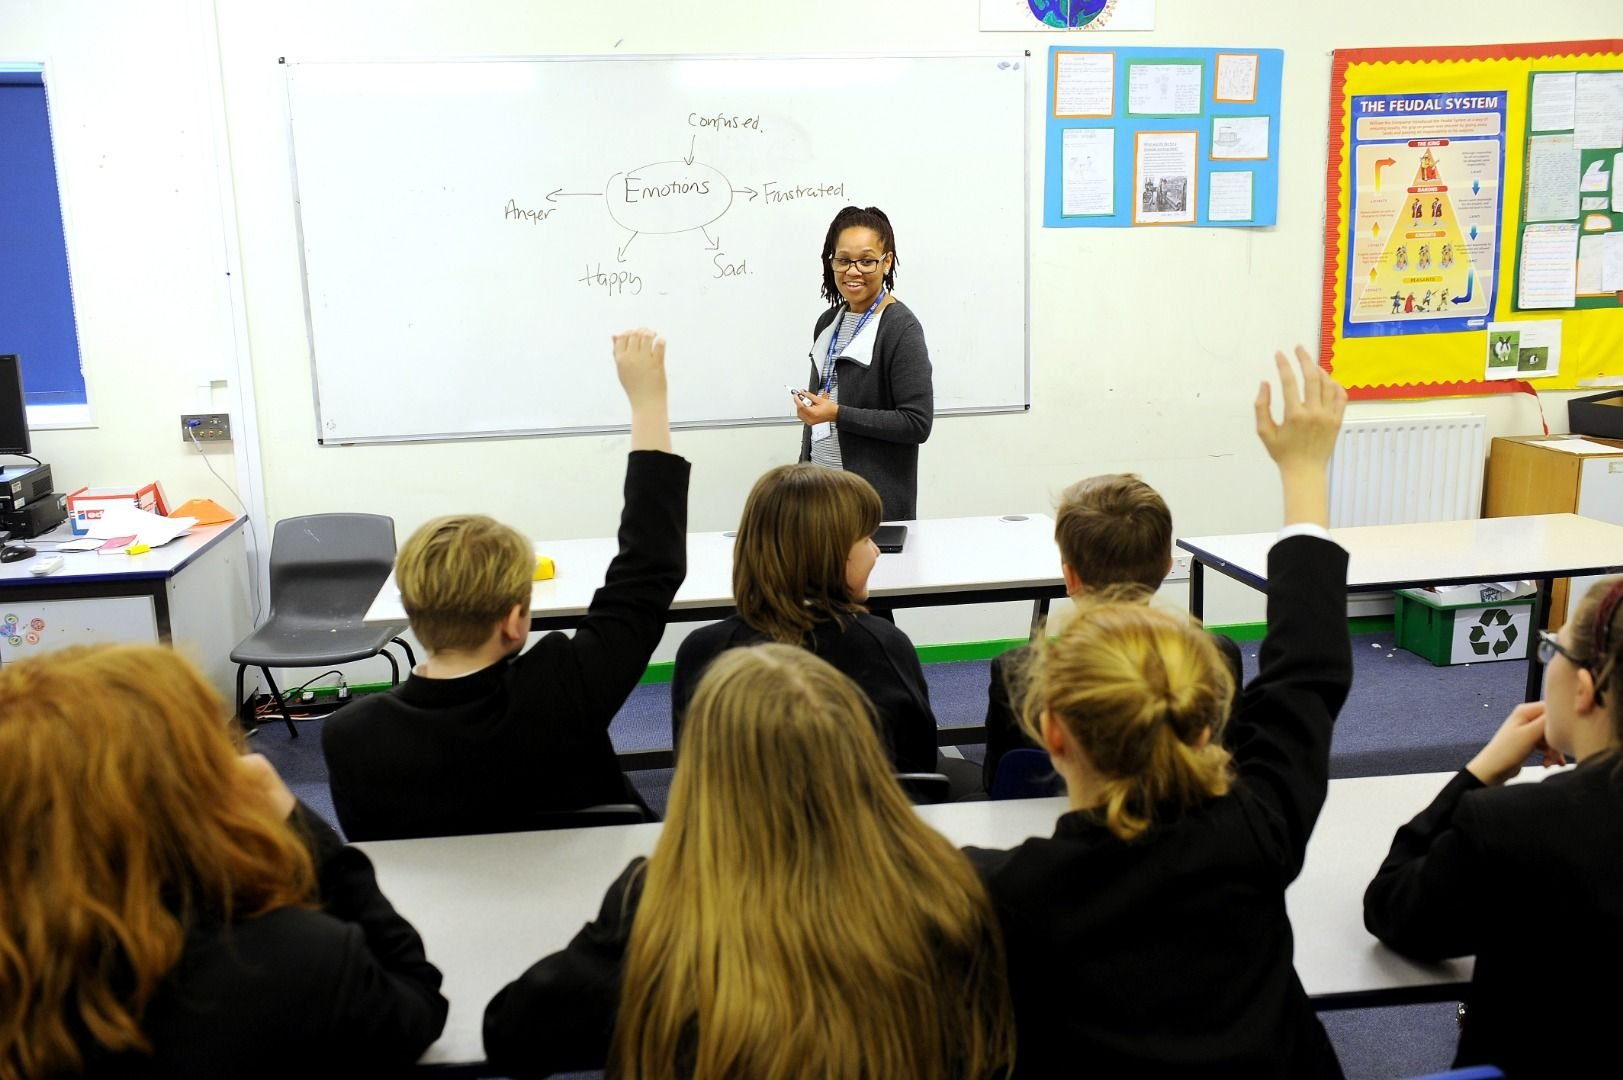 School Nurse delivering a teaching session